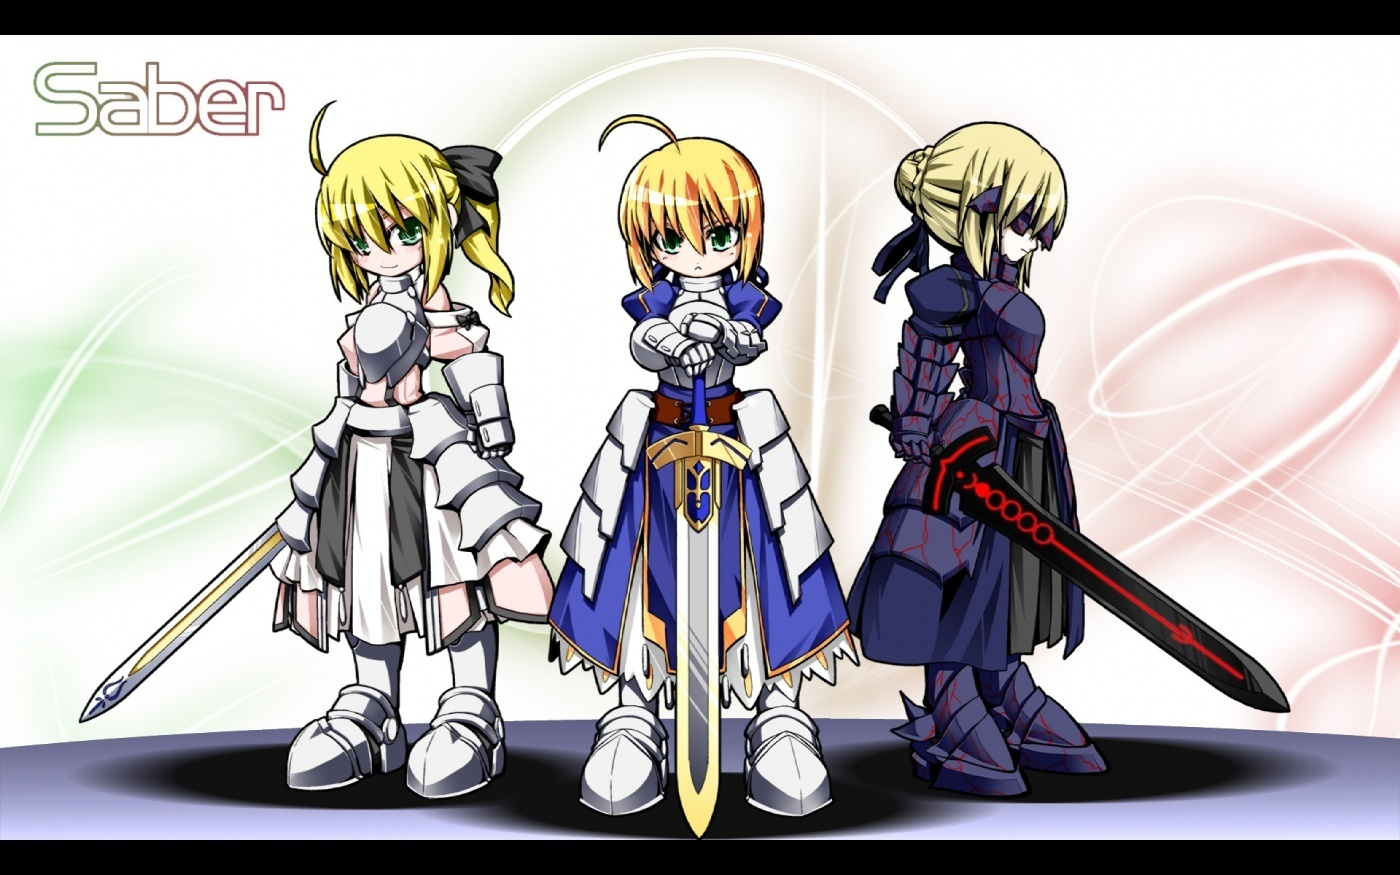 Fate Stay Night images Saber wallpaper photos 9631606 1400x875